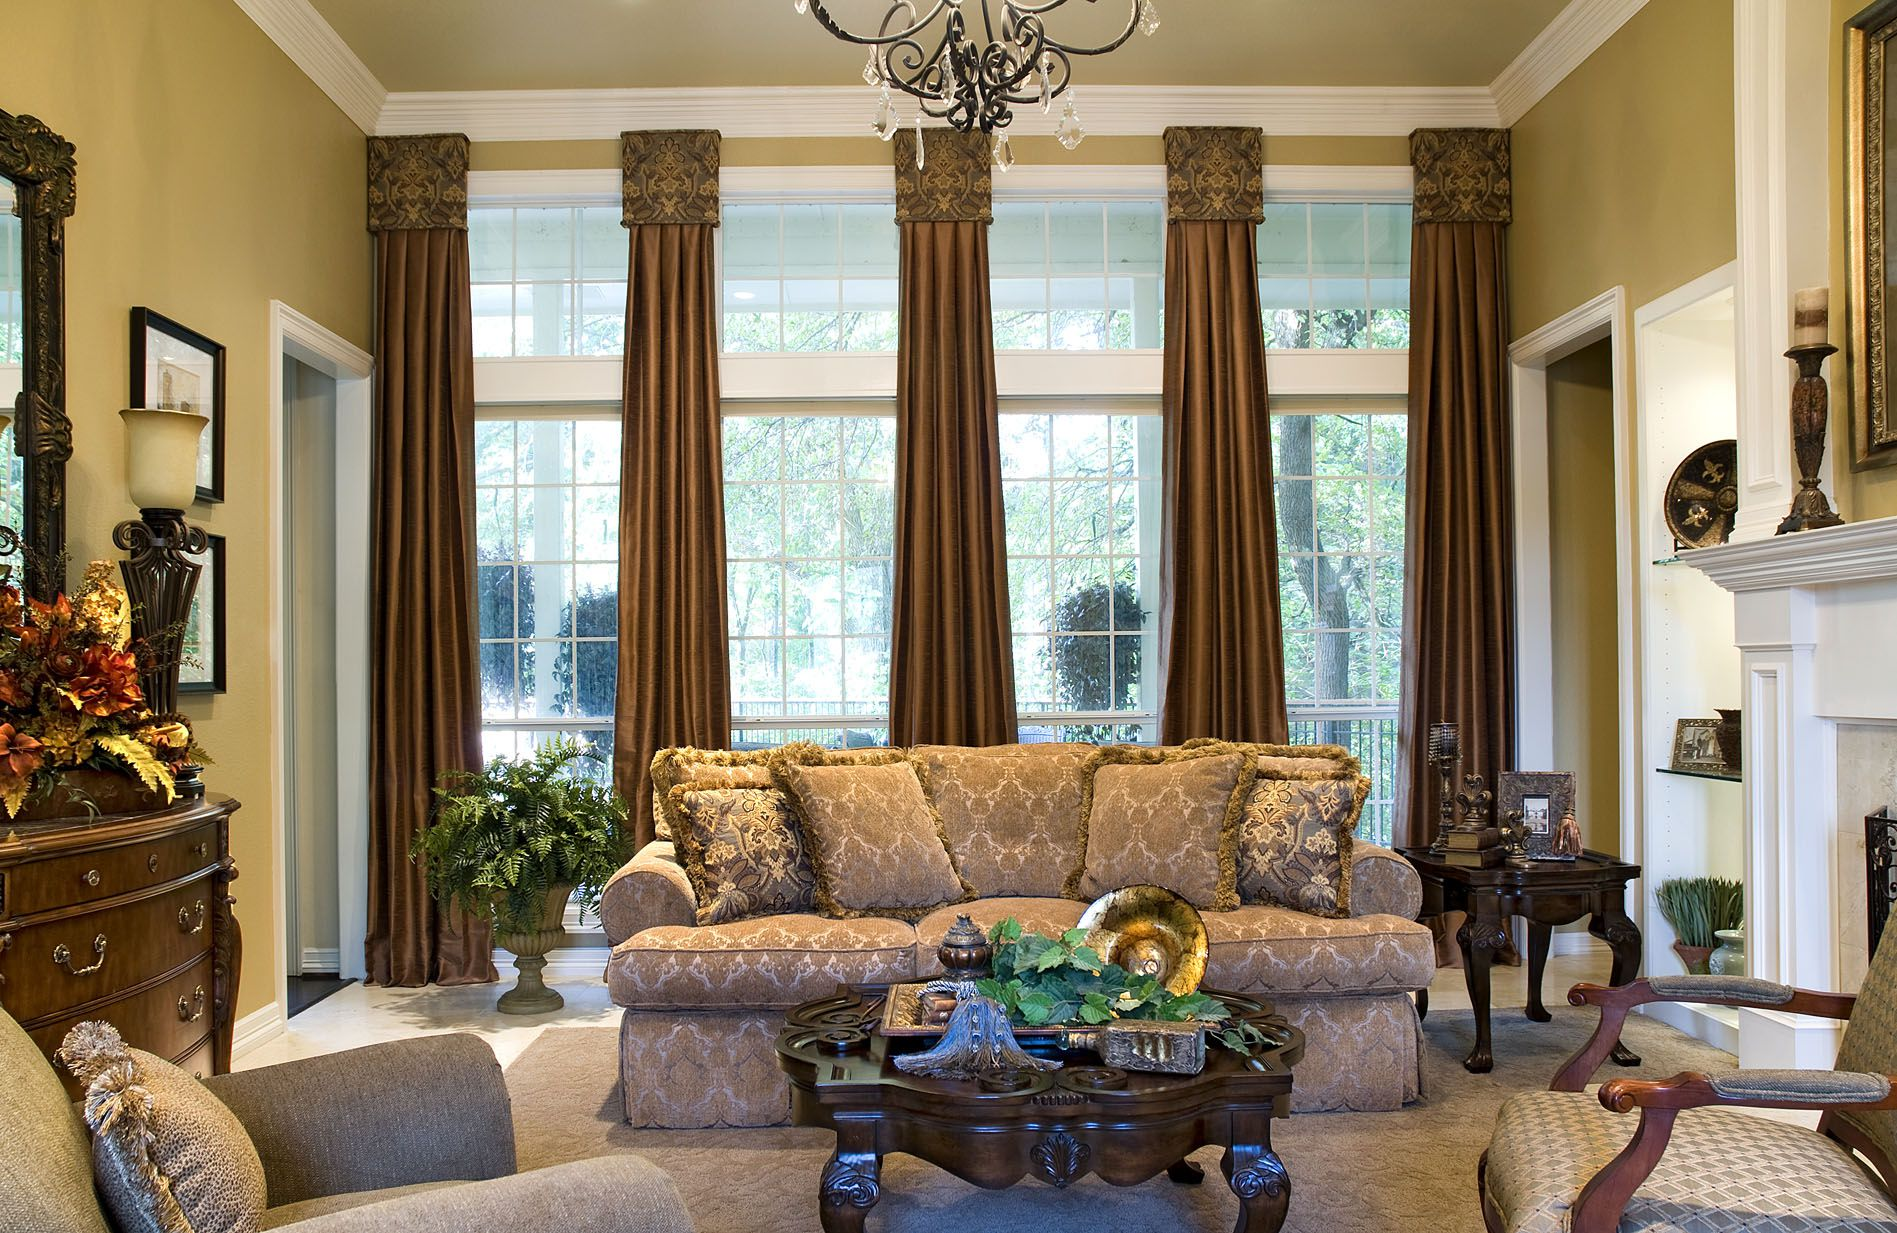 Charmant Attractive Living Space Using Brown Window Curtain And Modern Furniture